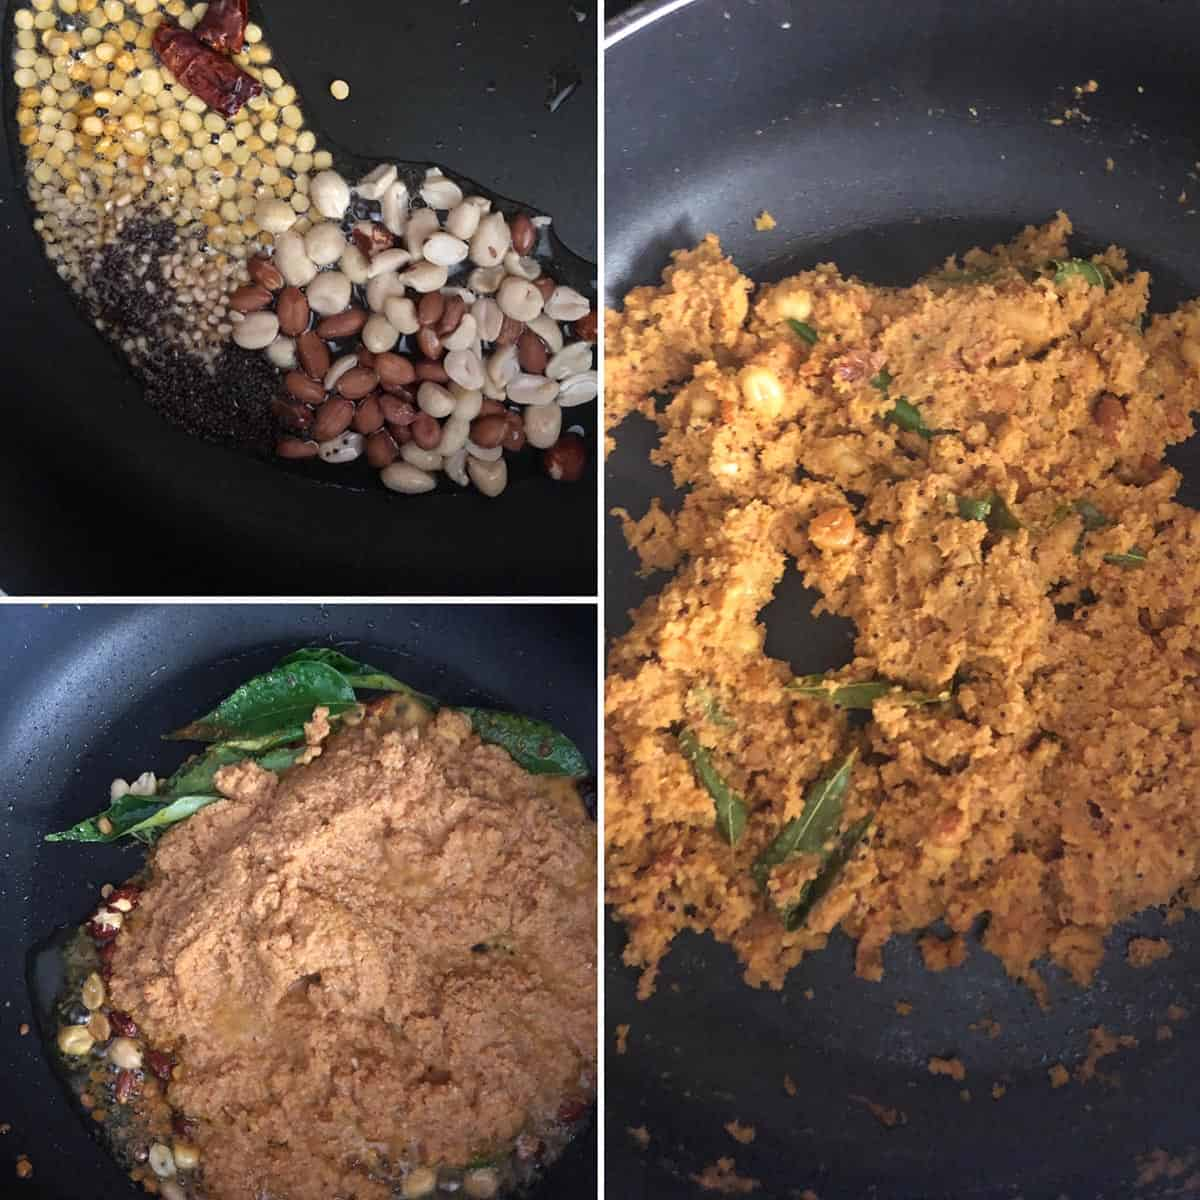 step by step photos showing cooking of peanuts, addition of ground paste to a nonstick pan